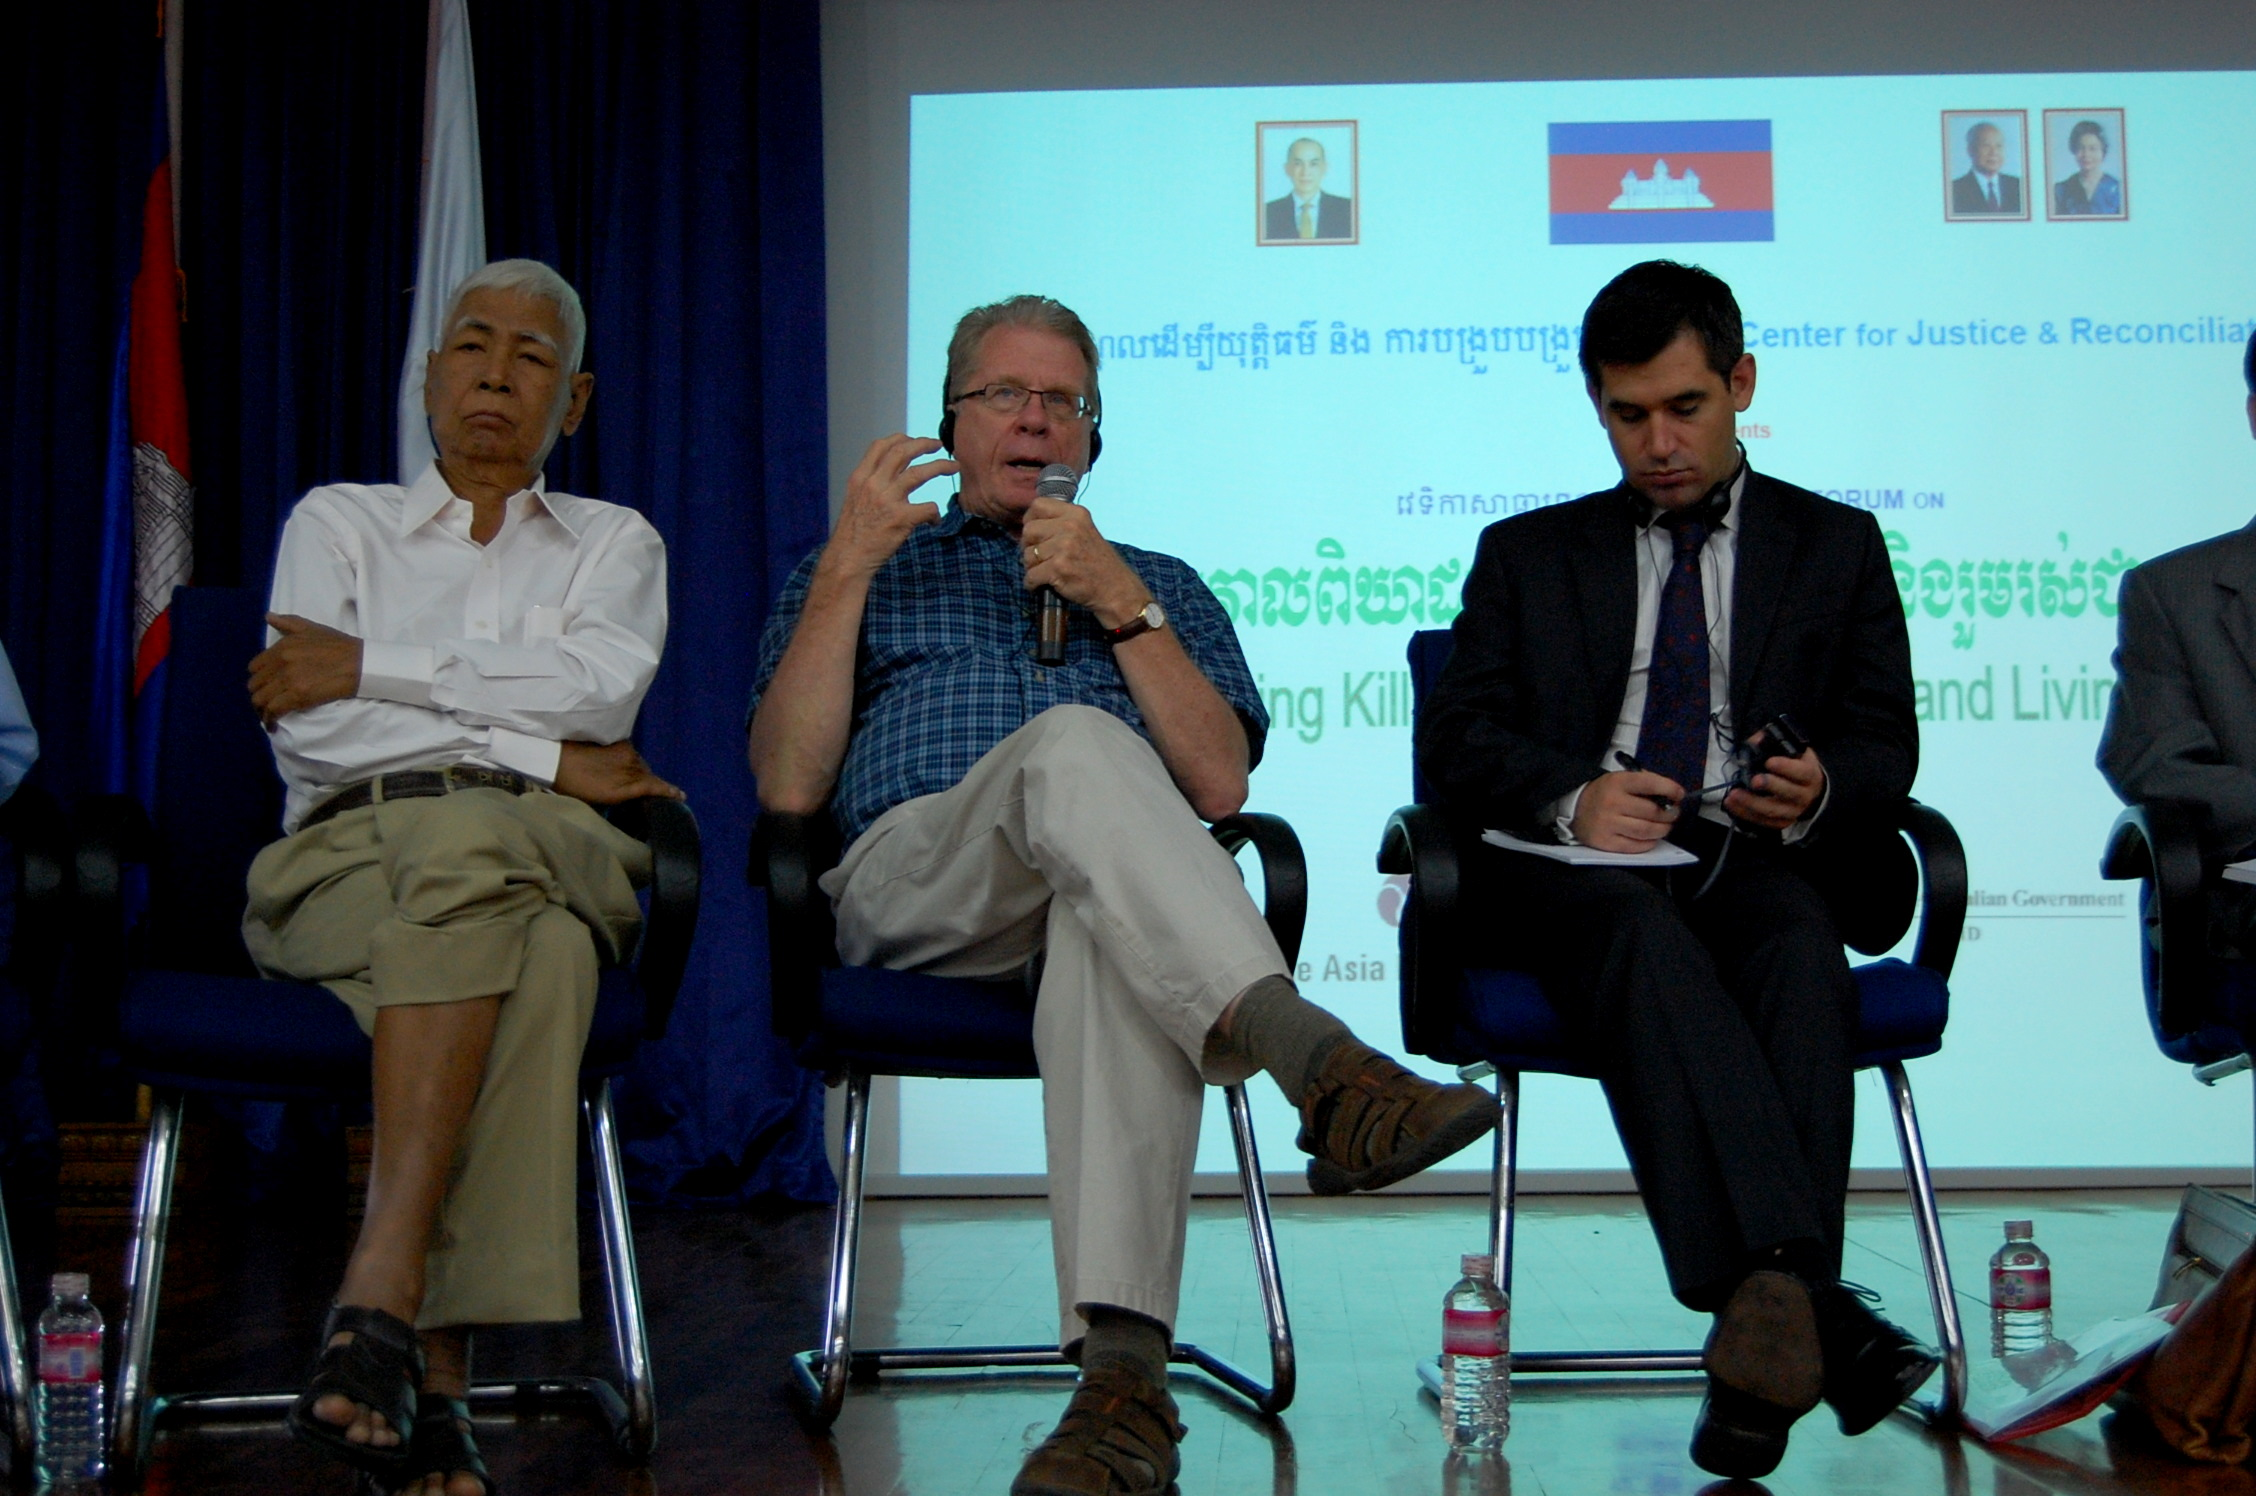 Van Nath, David Chandler, Andrew Mace at CJR public forum, 23 July 2010